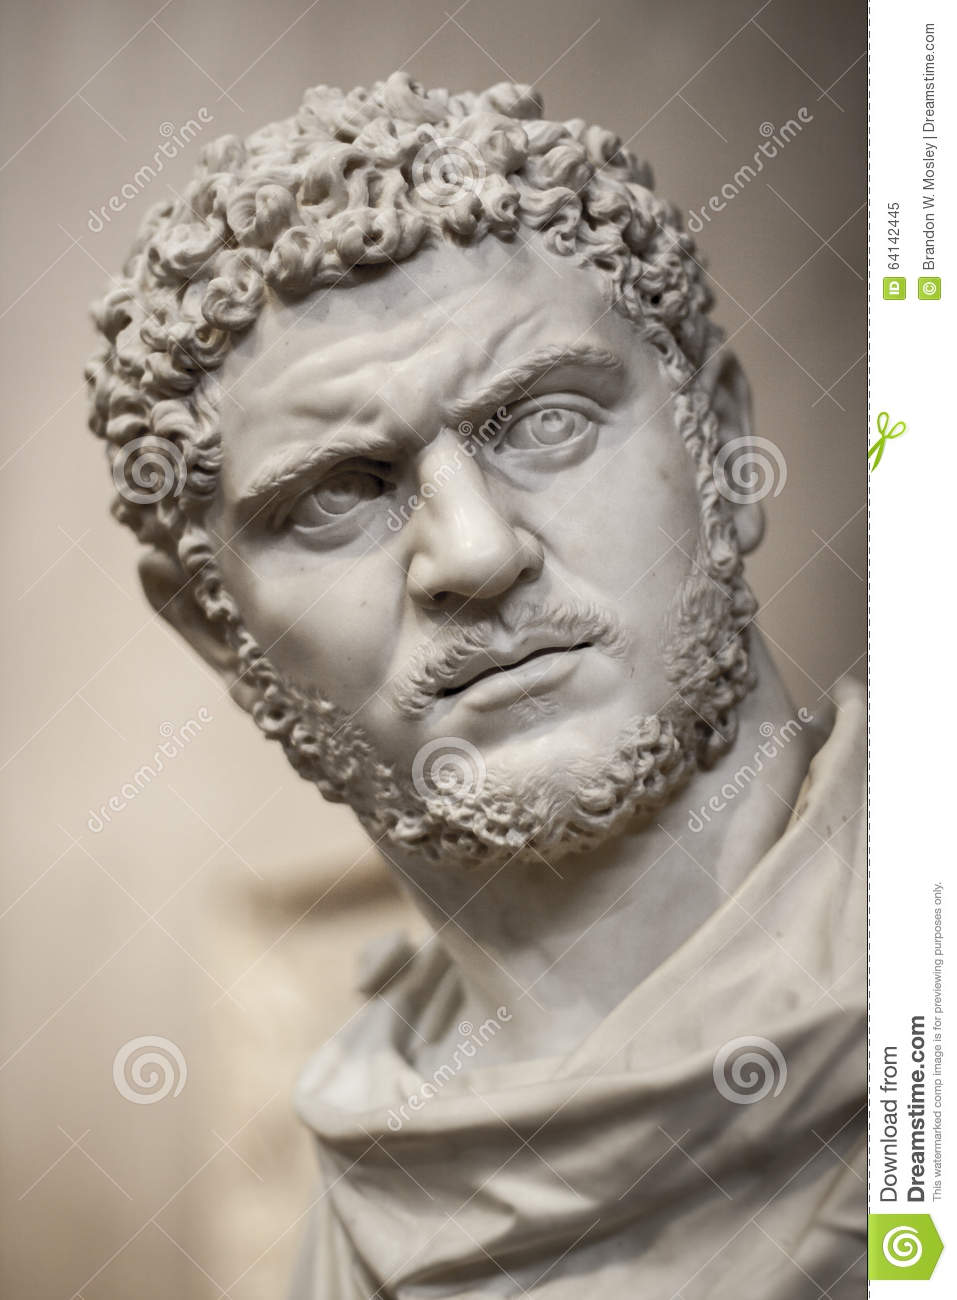 frowning male greek statue stock image image of ancient 64142445. Black Bedroom Furniture Sets. Home Design Ideas